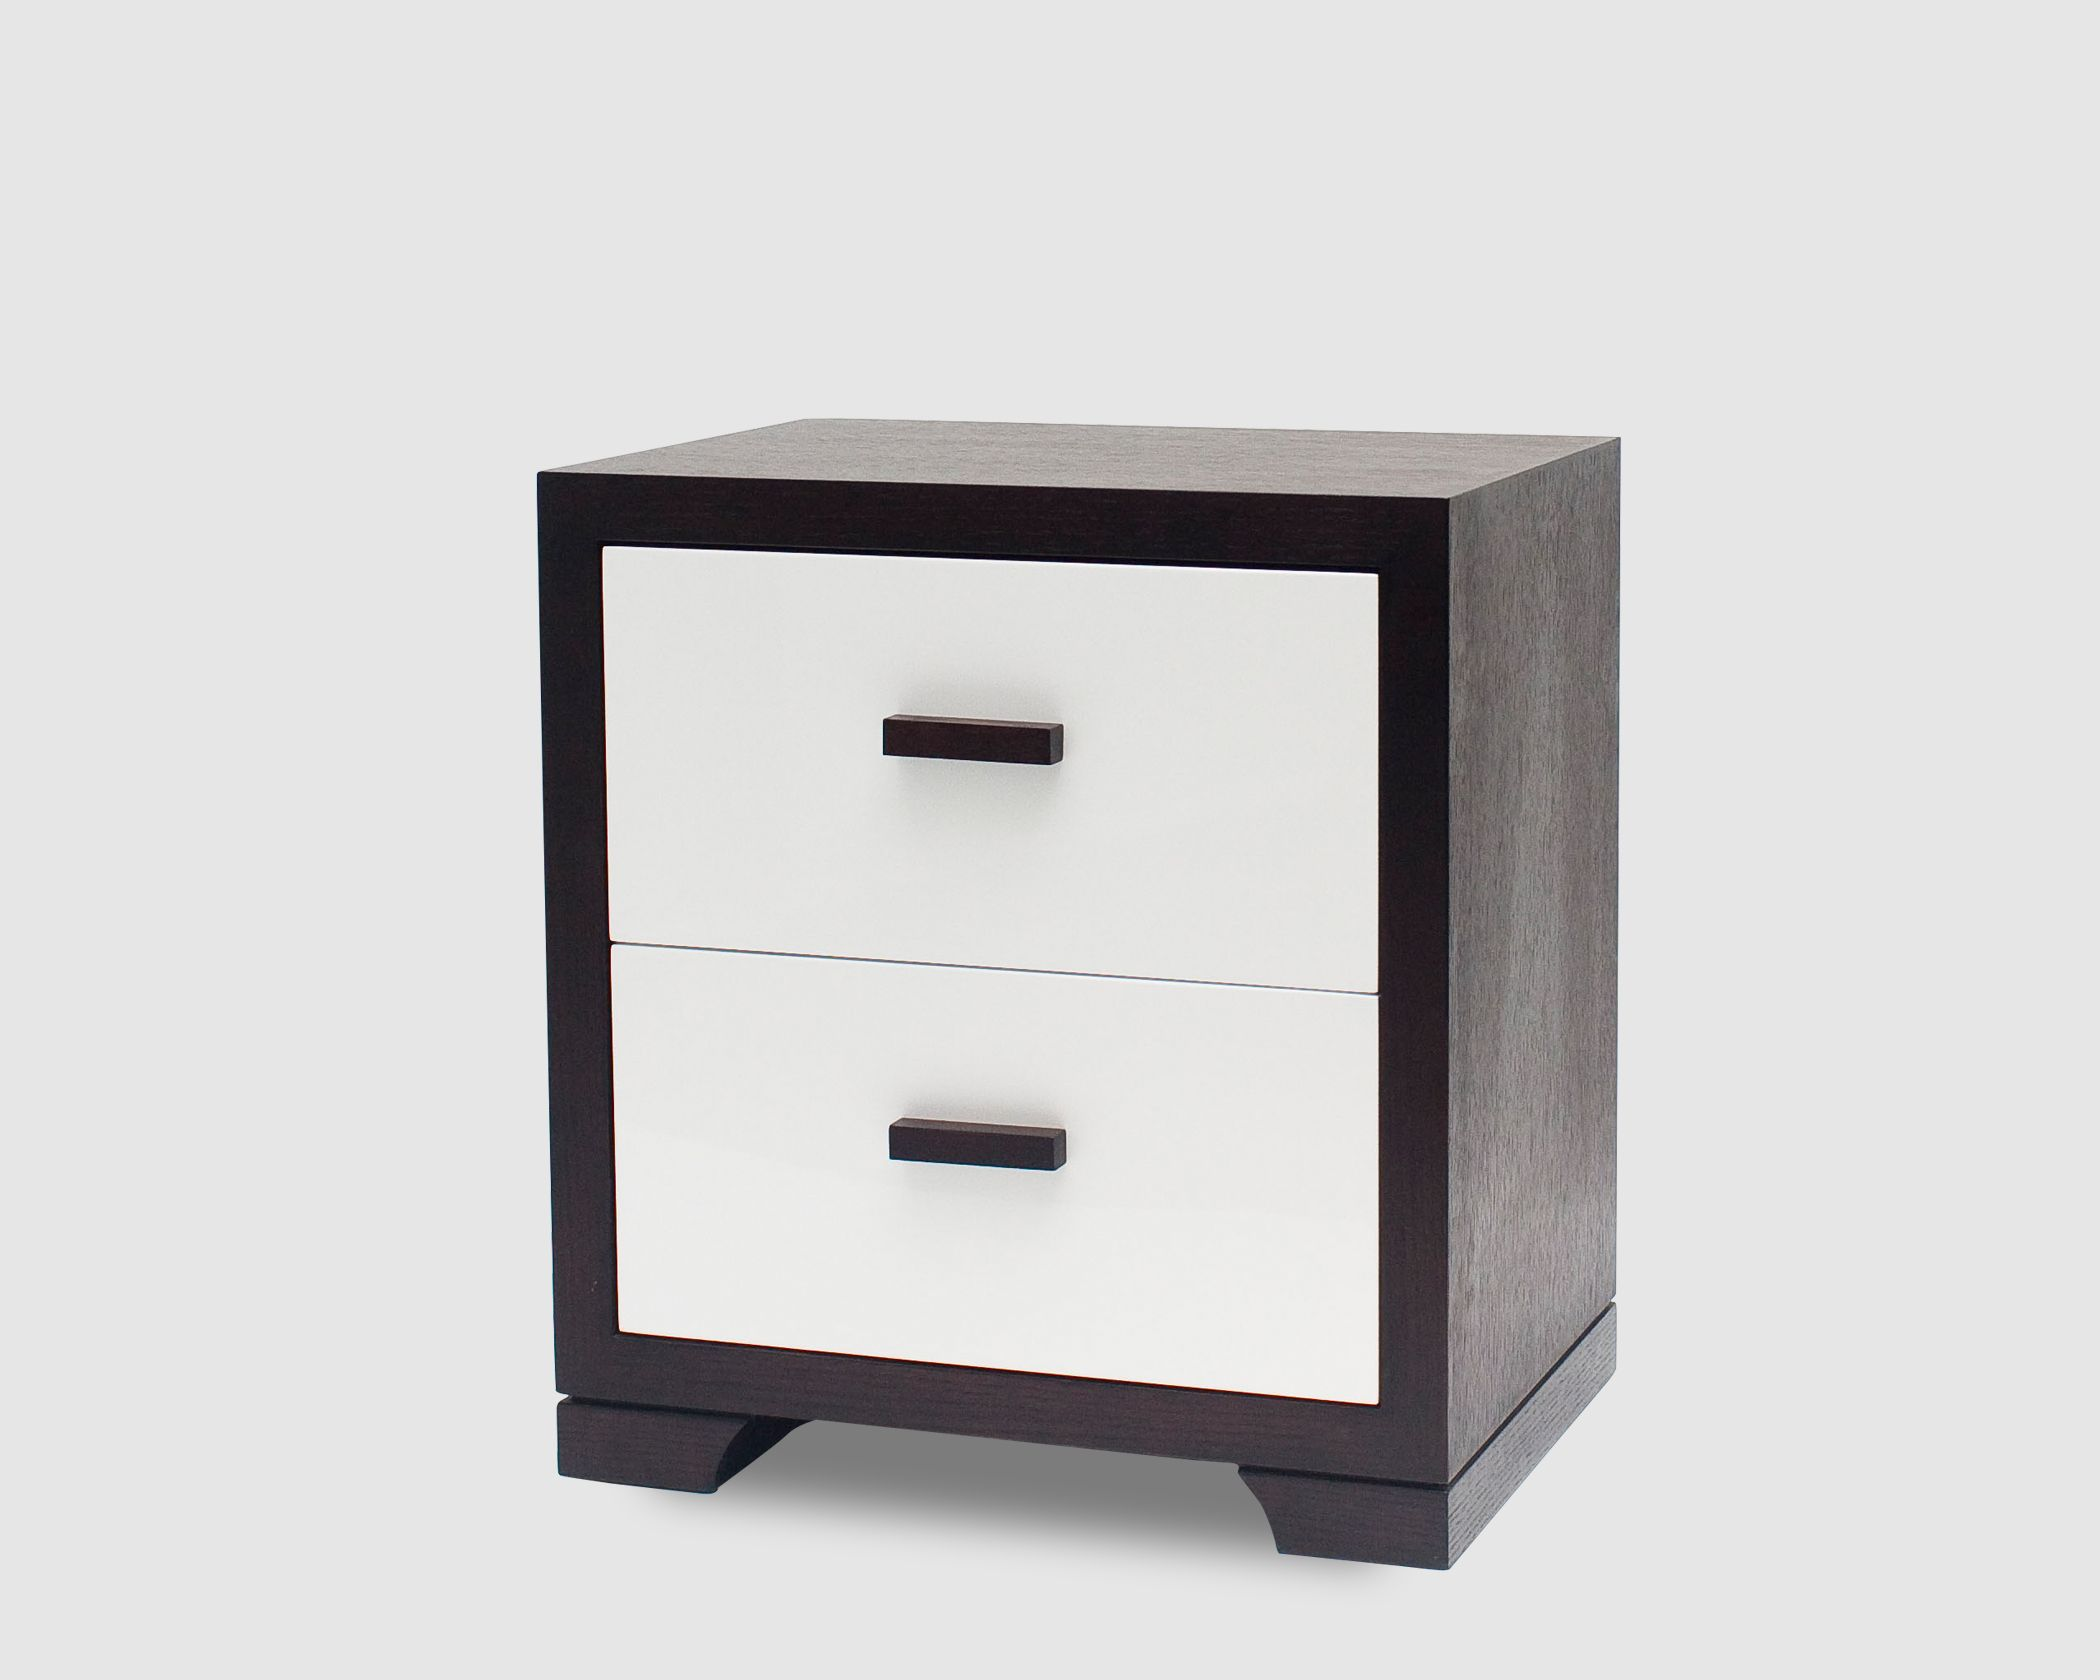 Dimensions: Width 600mm x Depth 400mm x Height 550mm Available color: Wenge Material: Wenge oak main body and white high gloss drawer front with wood handles Condition: New, produced to UK standard and well packed. Suitability: domestic and light commercial use only